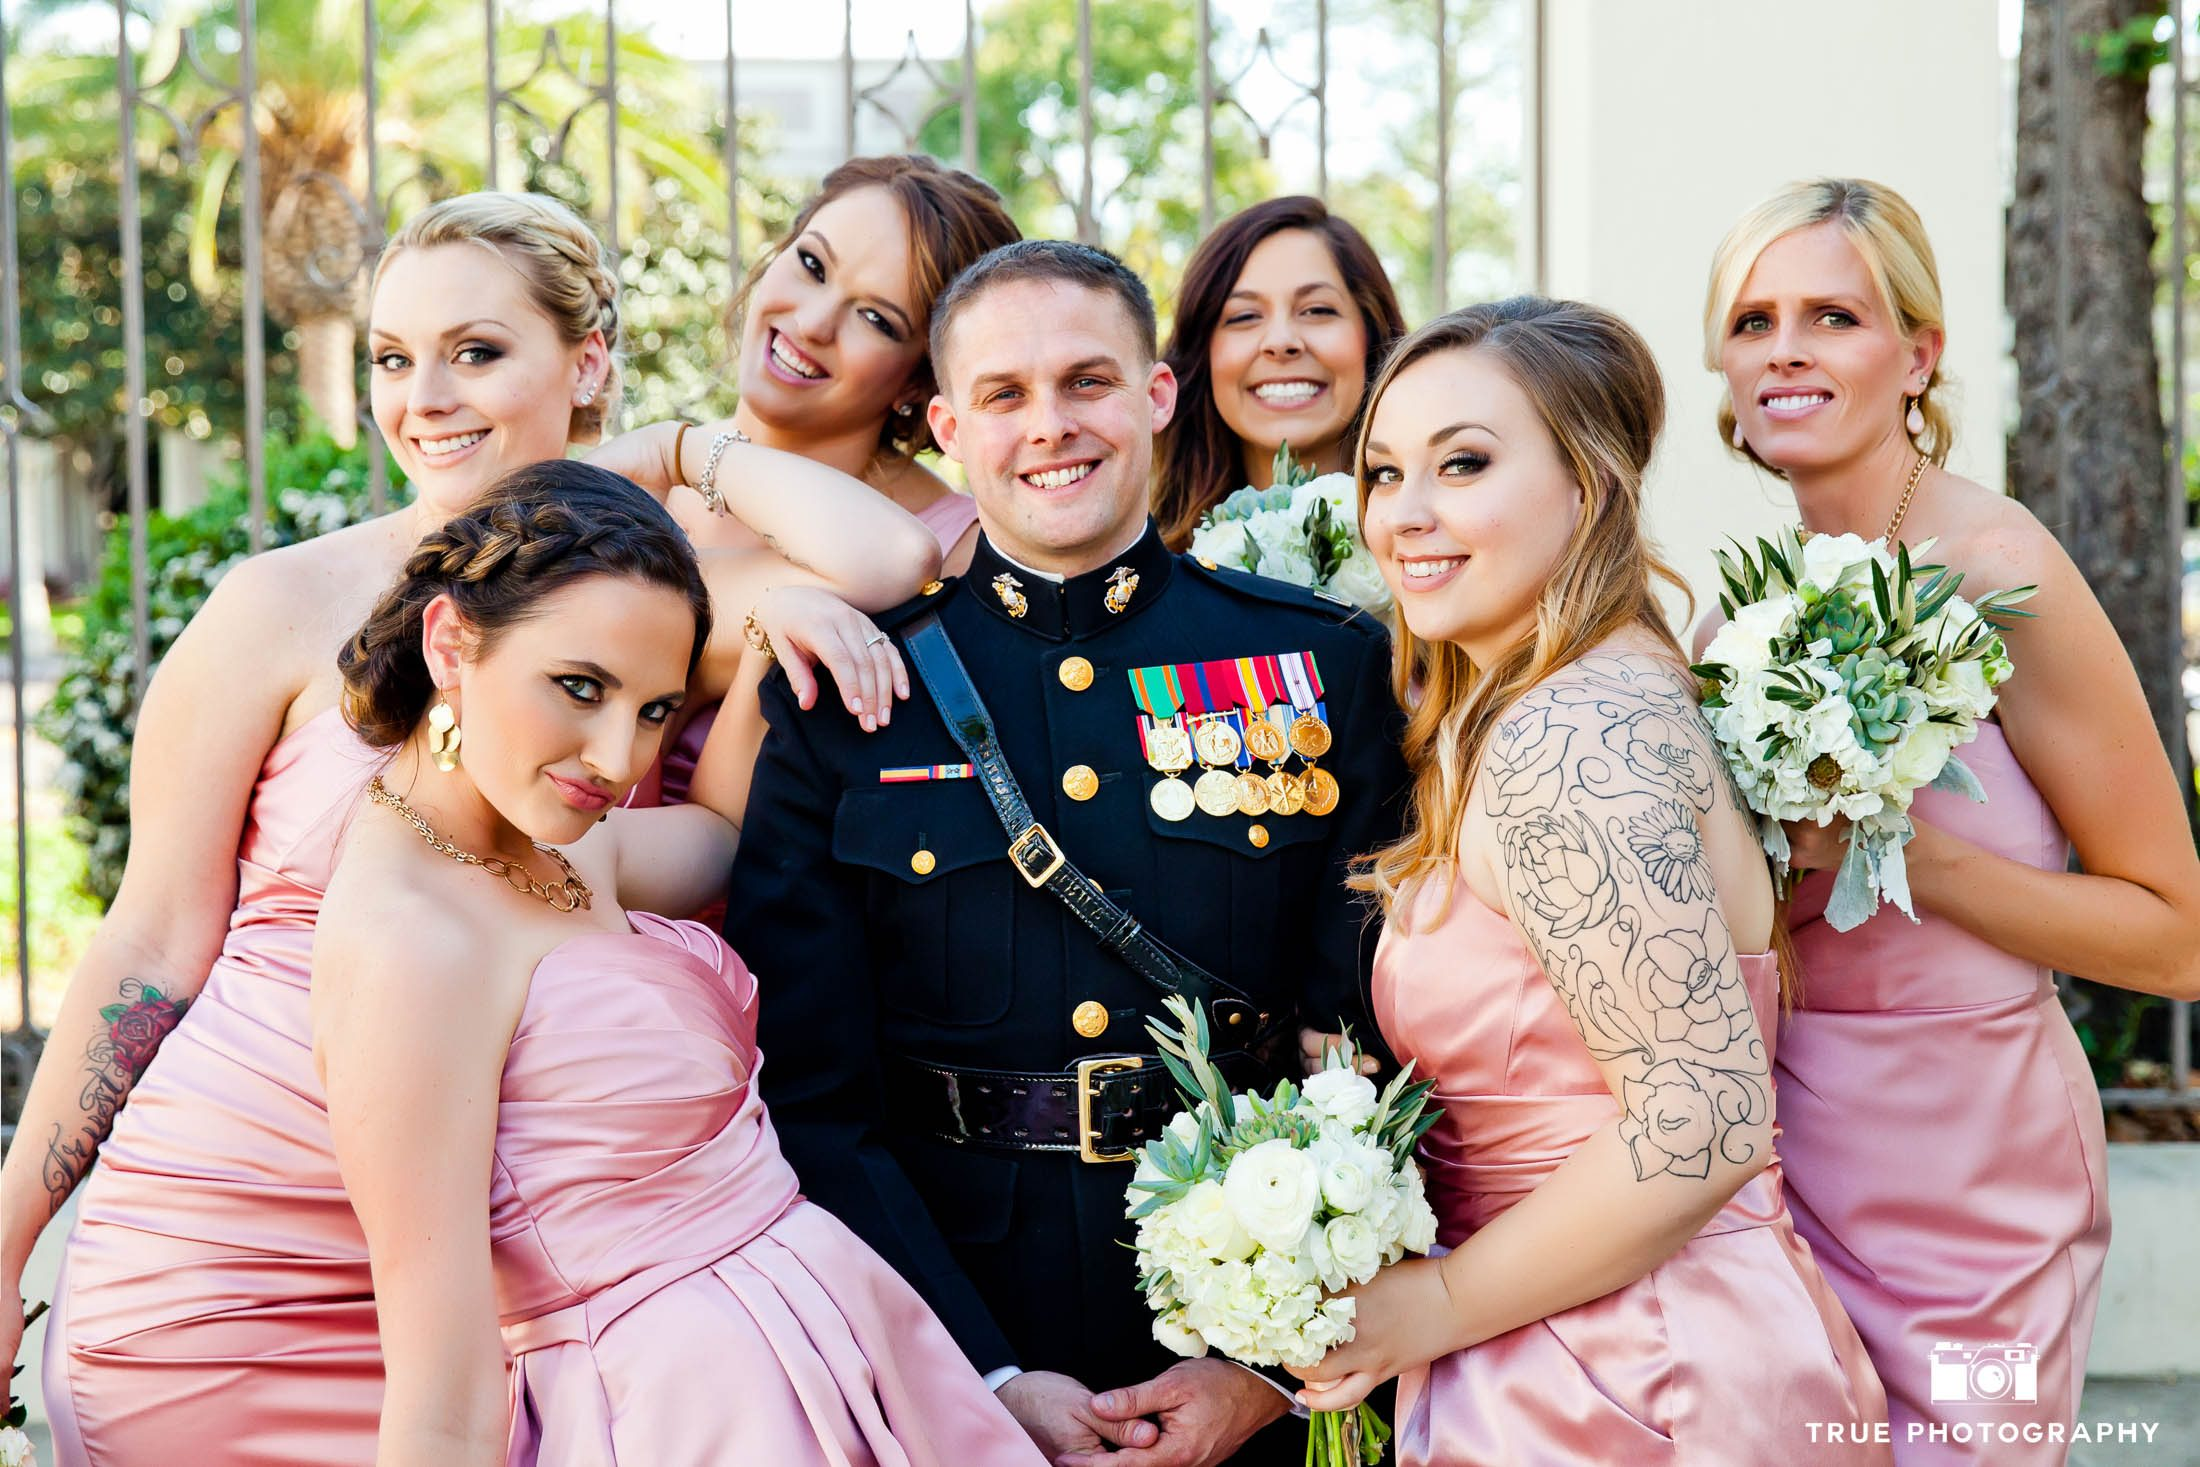 Military Groom poses with group of Bridesmaids before wedding ceremony